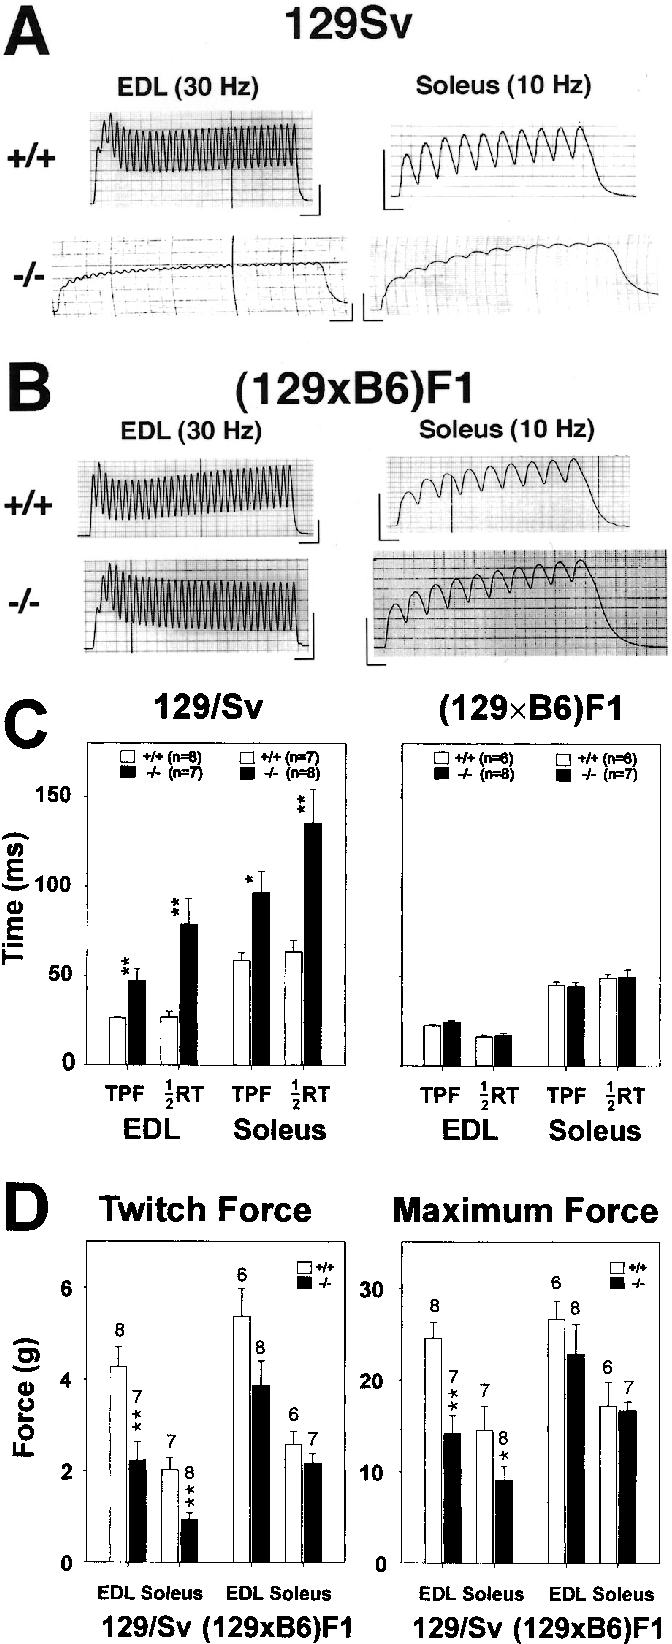 Fig. 2A–D Skeletal muscle properties of Kv3.1–/– mice vary with the genetic background. EDL and soleus muscles from Kv3.1+/+ and Kv3.1–/– 129/Sv mice (A) and (129/Sv×C57BL/6)F1 hybrids (B) were subjected to isometric contractions induced by electrical stimulation at 30 Hz (EDL) and 10 Hz (soleus). Contraction and relaxation were not altered in muscles of F1 hybrids; in contrast, Kv3.1–/– 129/Sv muscles were slower and mechanical summation occurred at lower frequencies. (C) Time-to-peak-force (TPF) and half-relaxation time (1/2RT) for a single twitch and (D) force generation were measured for a single twitch and during tetanic stimulation (at 150 Hz). There were no significant differences between wild-type and Kv3.1–/– muscles of (129/Sv×C57BL/6) F1 mice; in contrast, TPF and 1/2RT values were significantly prolonged and force generation was reduced in Kv3.1–/– muscle of 129/Sv mice (the data for TPF and 1/2RT for 129/Sv are from [16]). Data were analyzed by a two-tailed Student's t test (*P<0.05; **P<0.01); the sample sizes are indicated at the top of the bars in panel D. The ≅25% reduction in twitch force for F1 extensor digitorum longum (EDL) muscle is marginally insignificant (P=0.07)